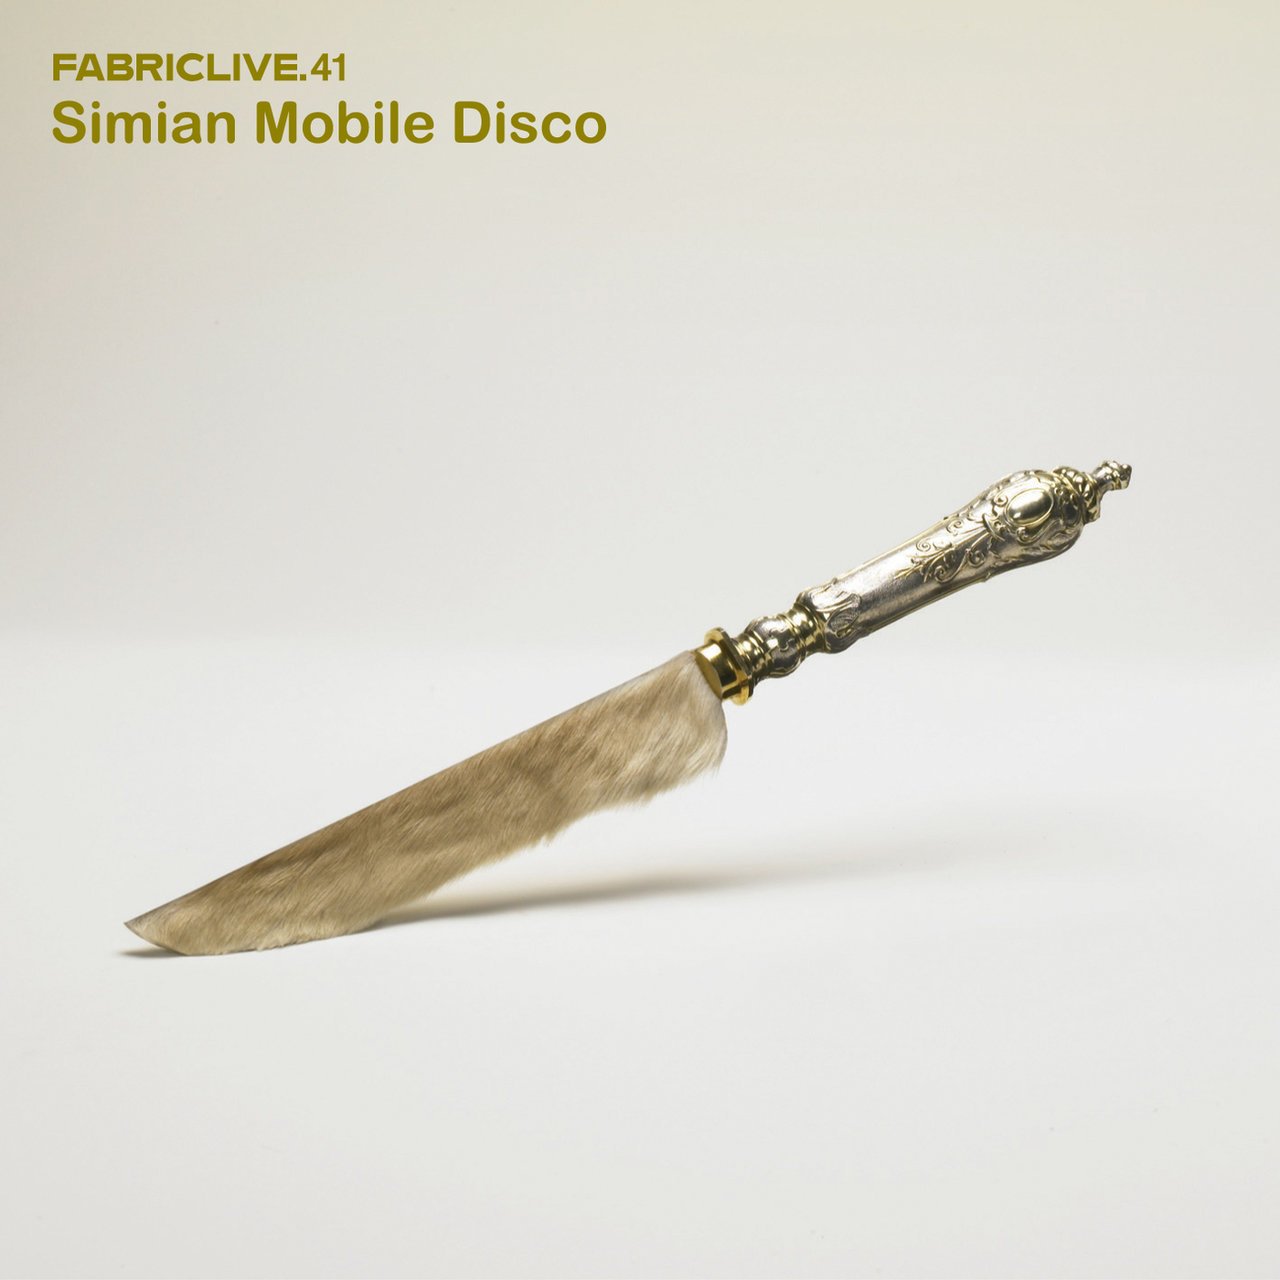 FABRICLIVE41:Simian Mobile Disco